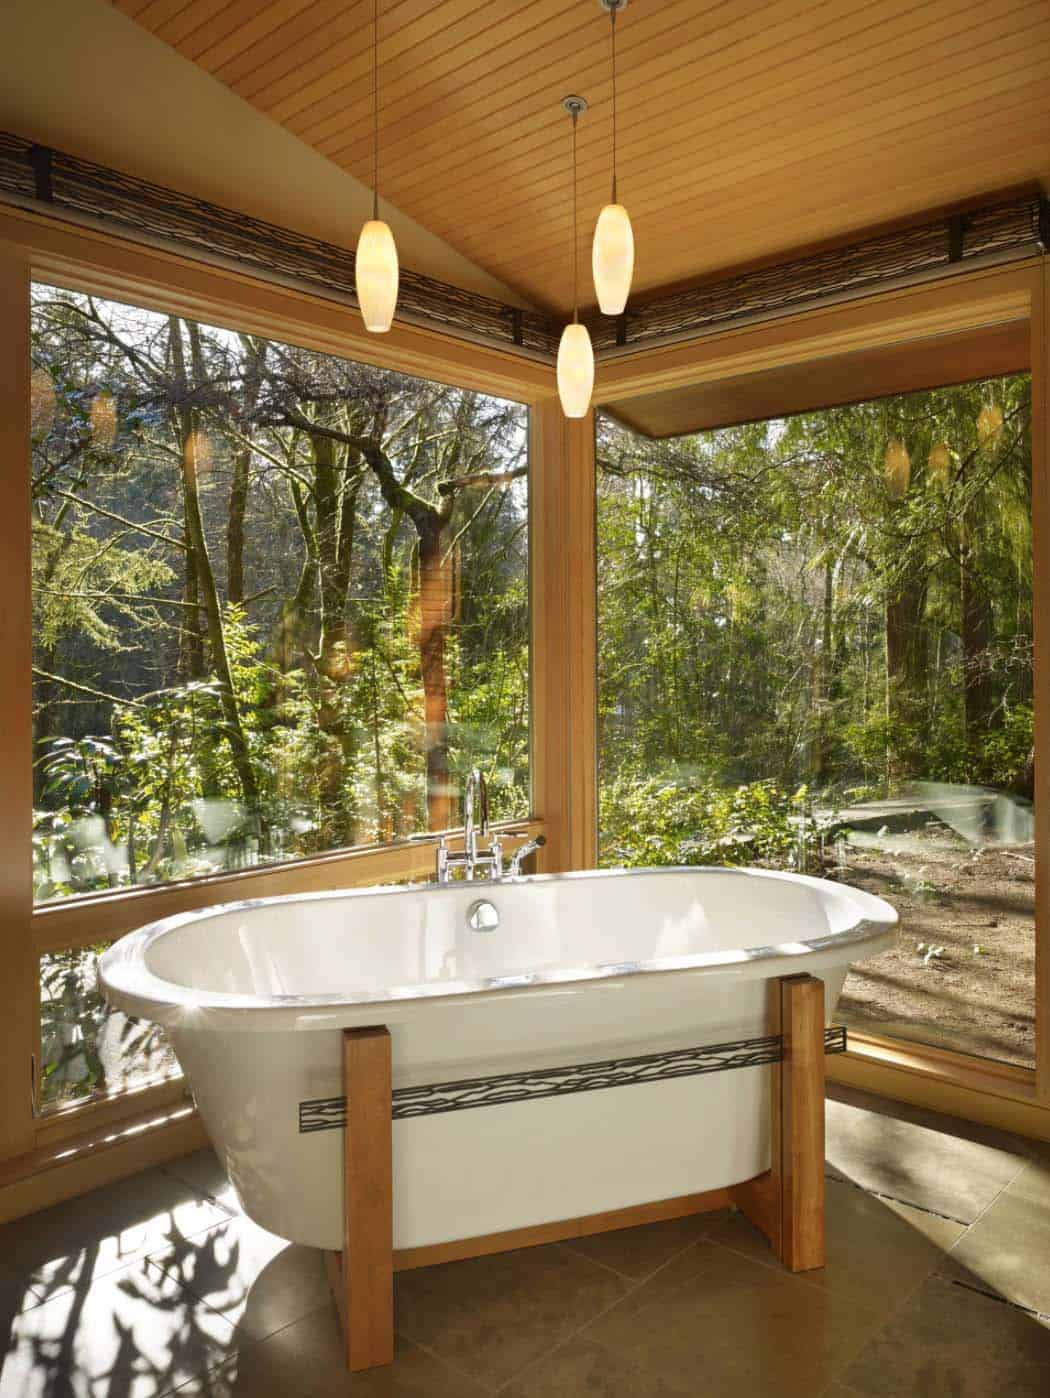 Beautiful bathtub by the forest design ideas